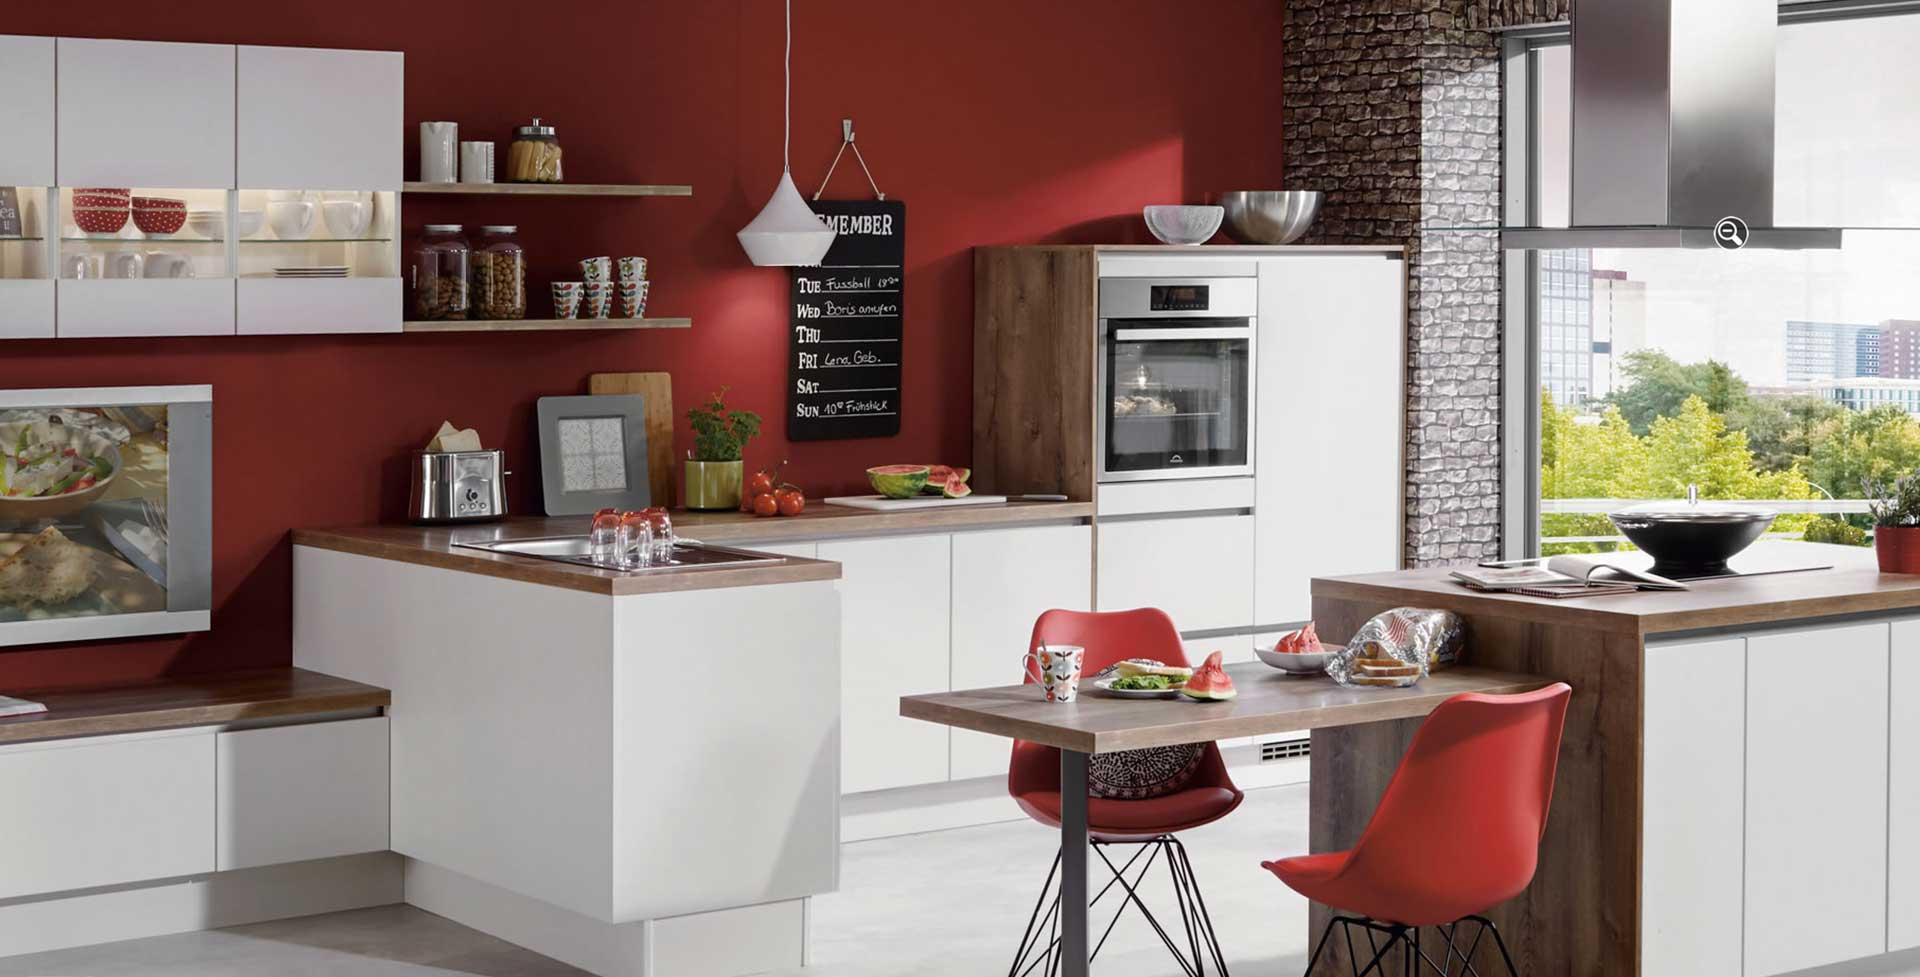 spendlove-kitchens-nobilia-design2